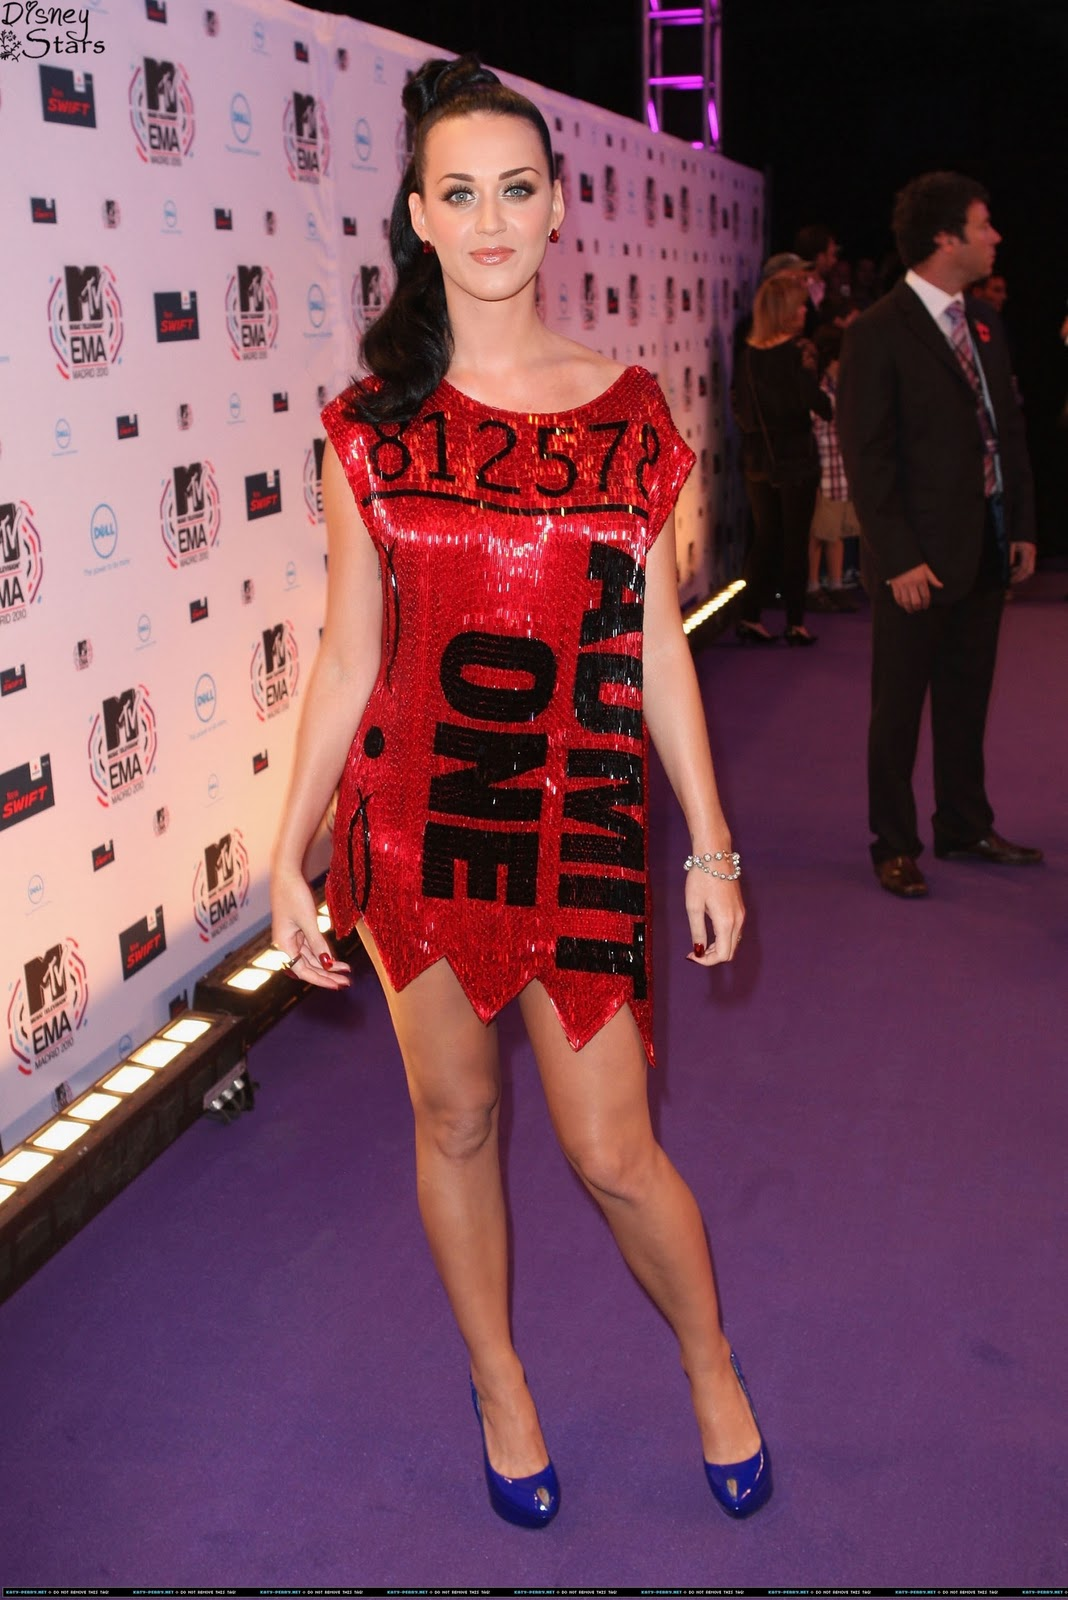 http://3.bp.blogspot.com/_mibZCo3wqkQ/TNf7D3fbHVI/AAAAAAAAFT8/M1UKQKva07E/s1600/MTV-Europe-Music-Awards-2010-katy-perry-16804931-1708-2560.jpg